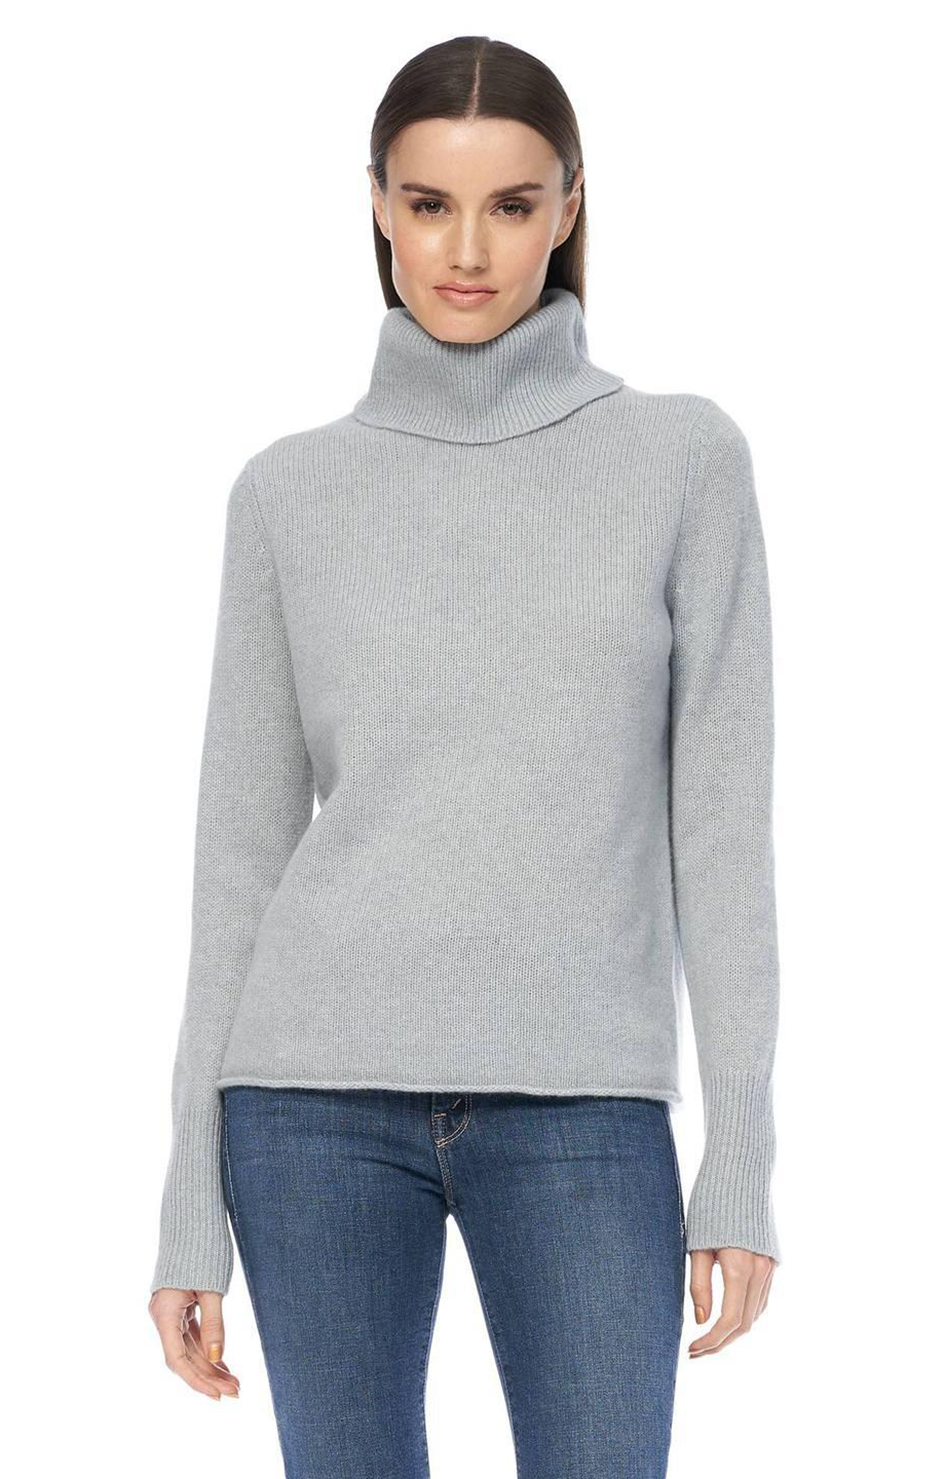 Poppi Cashmere Turtleneck - Misty Blue